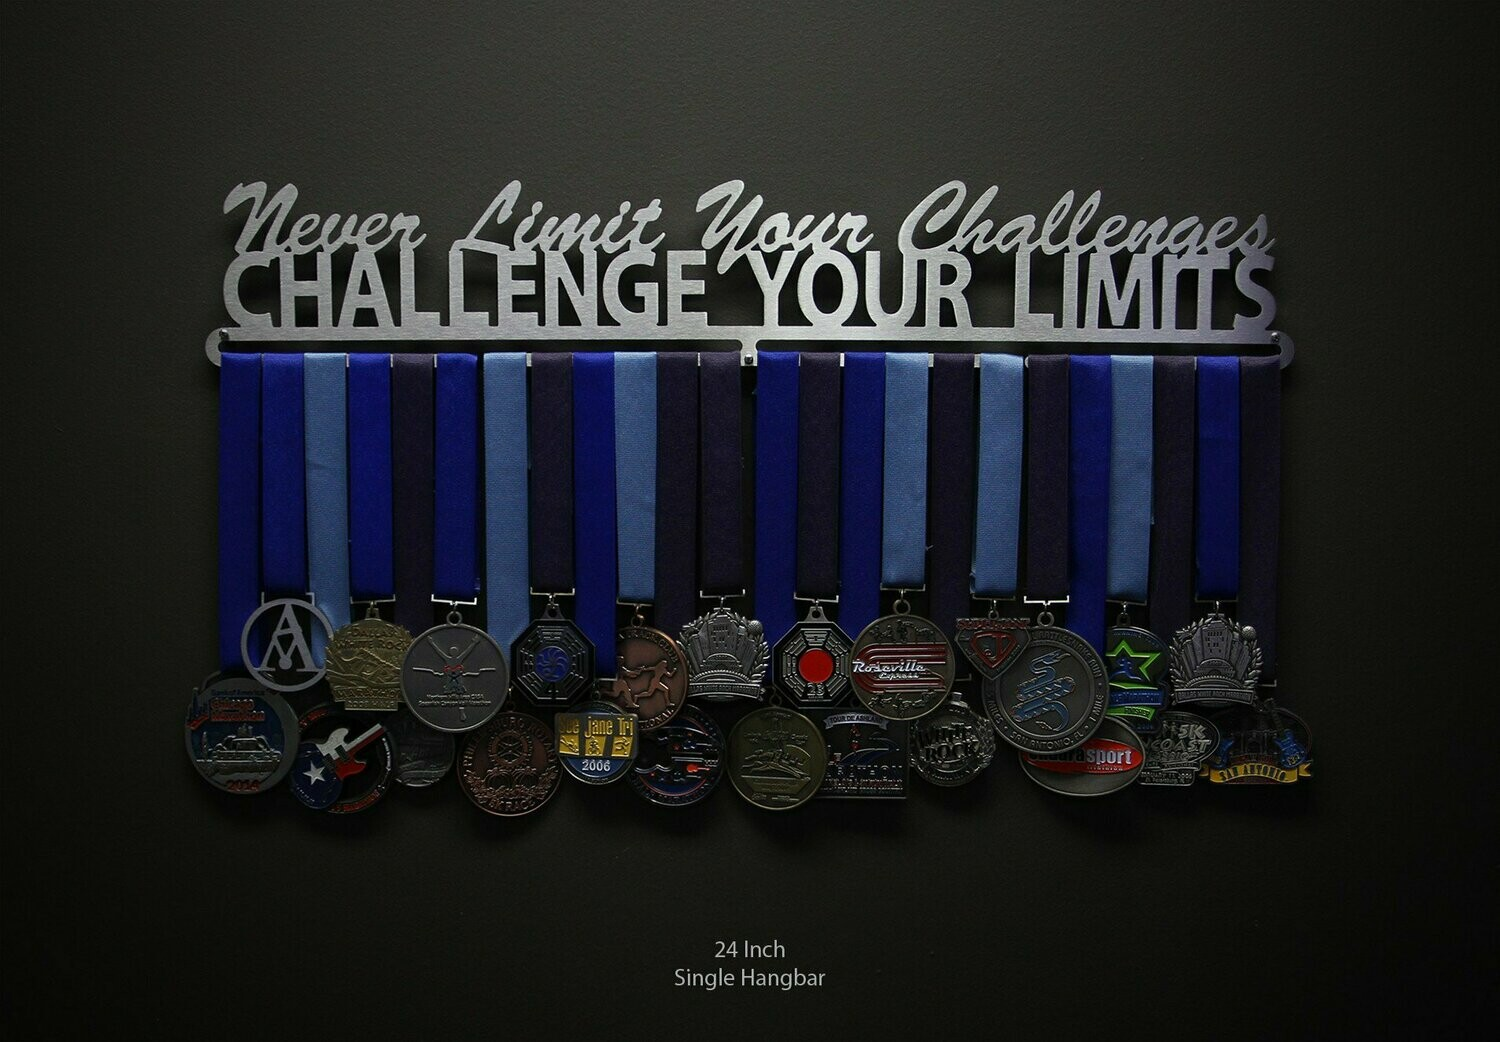 Medal Hanger Challenge Your Limits